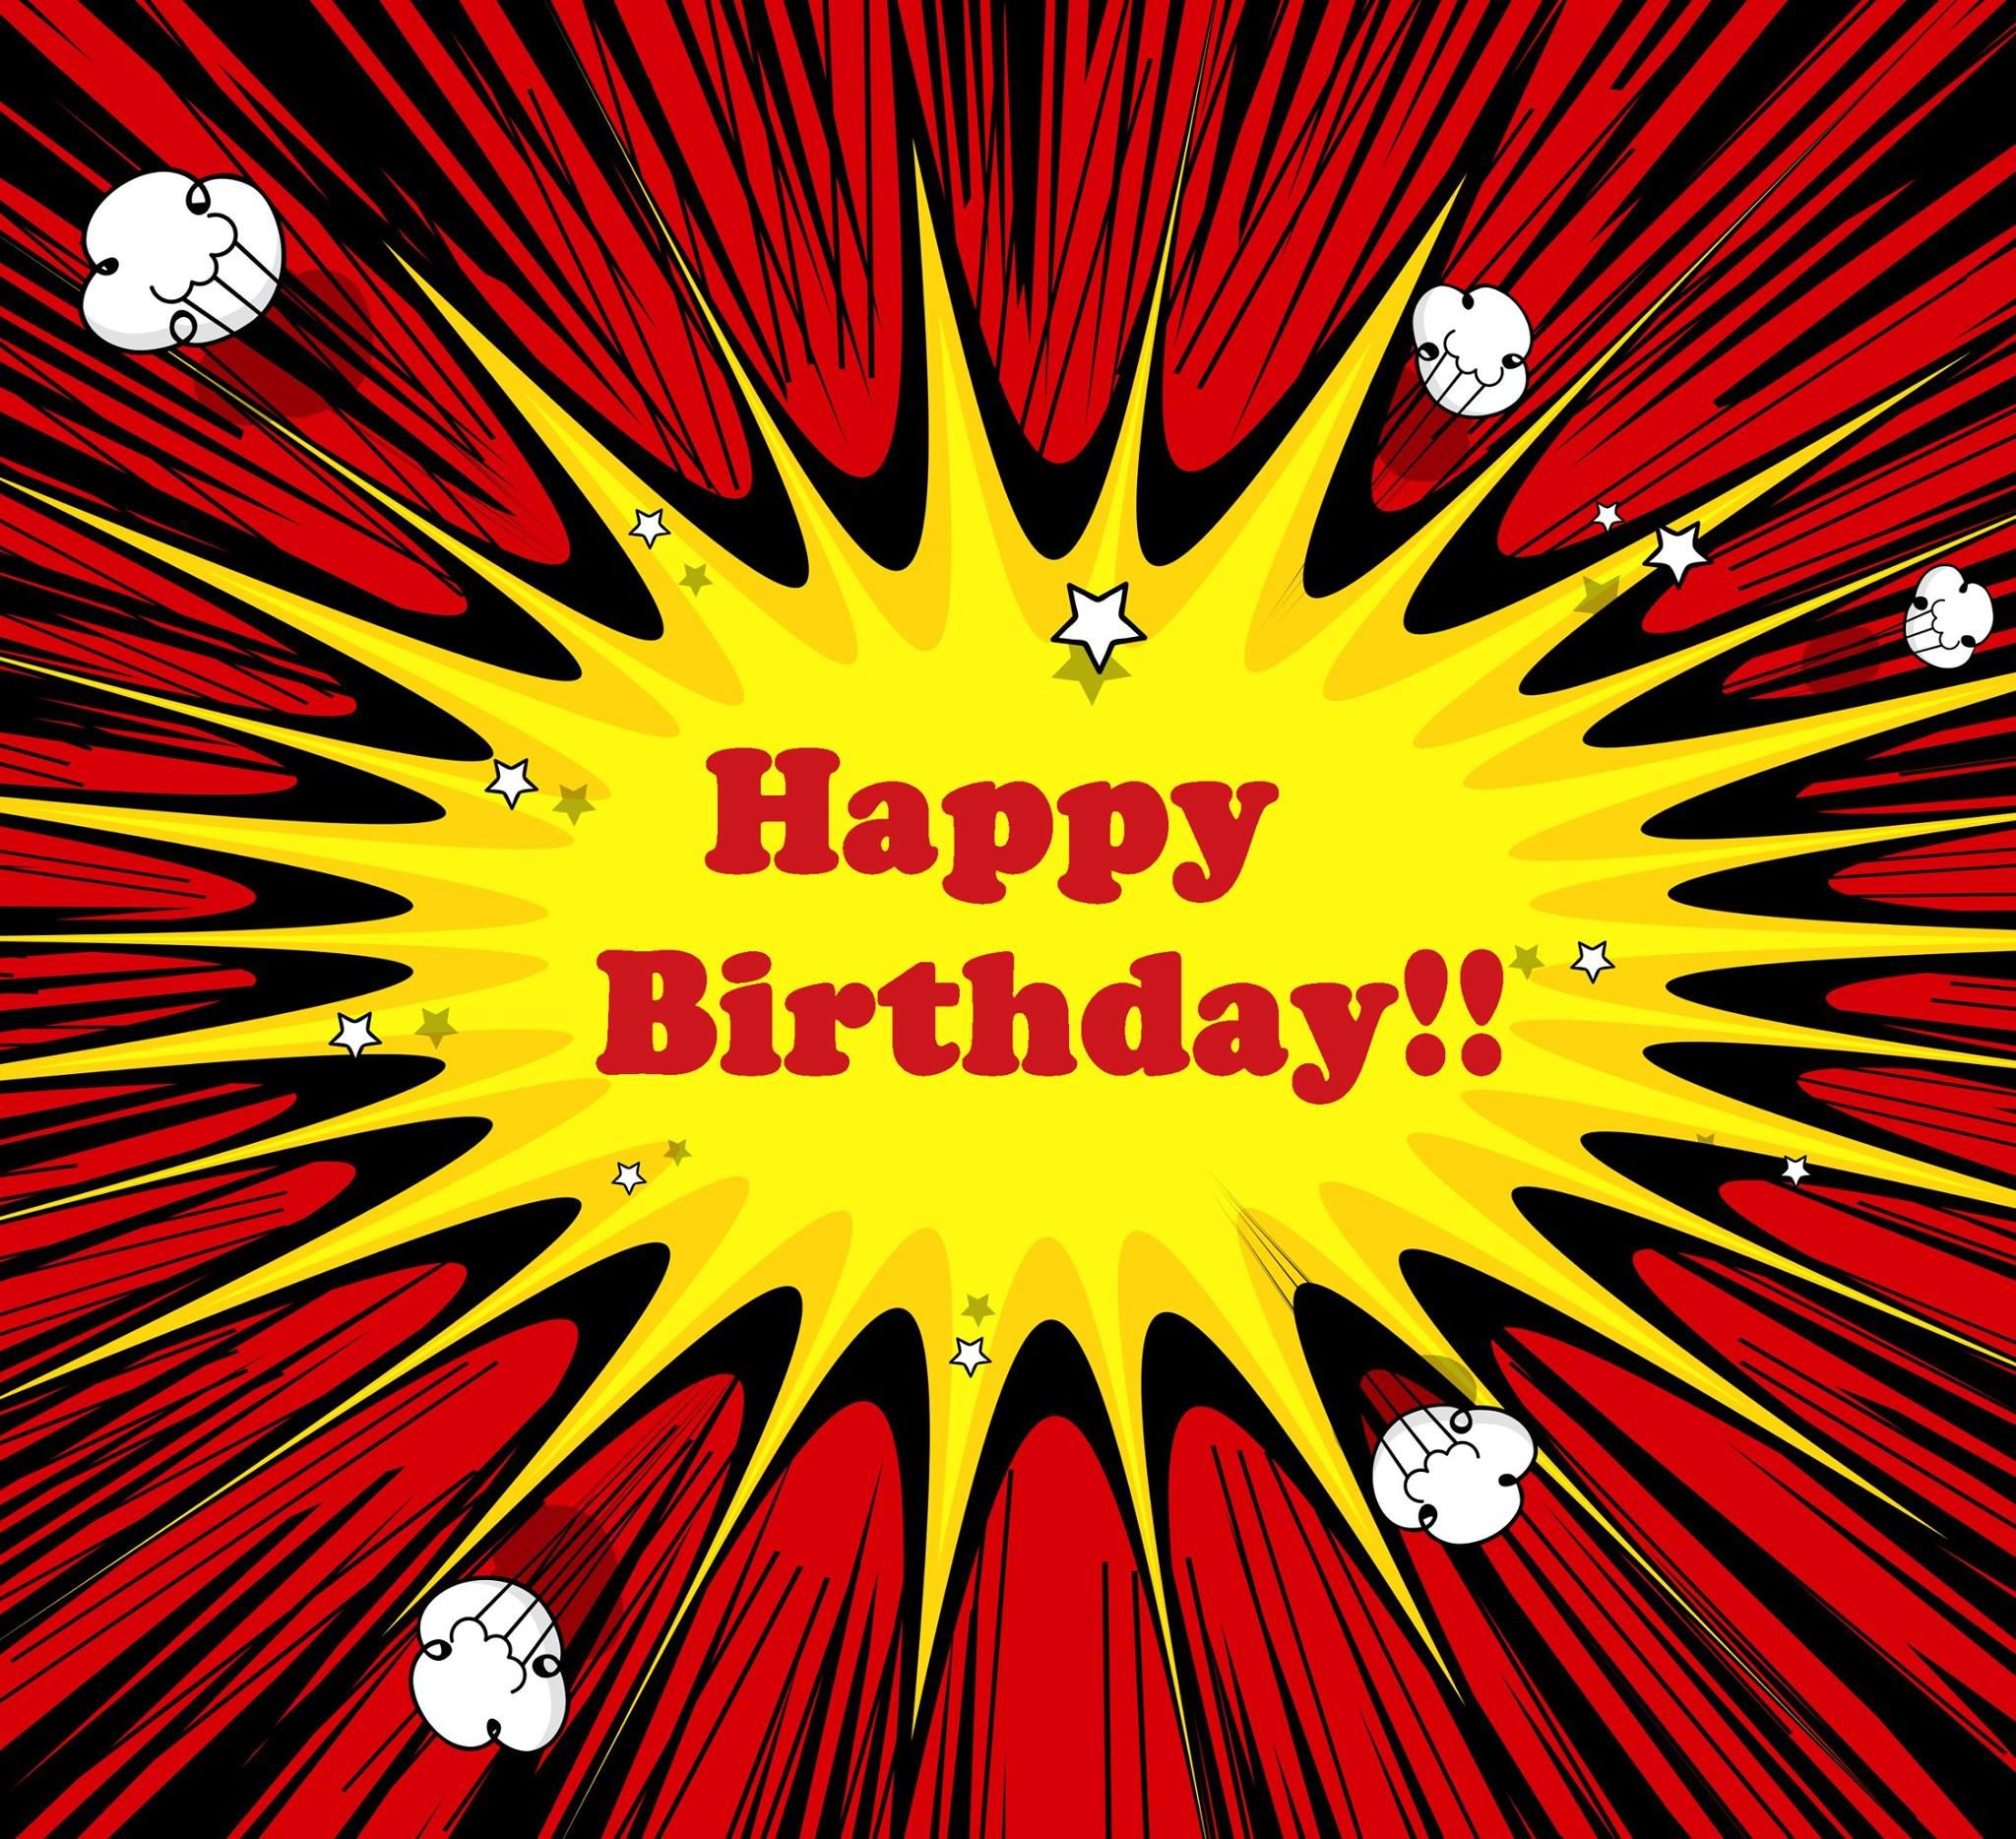 Comic Book Style Happy Birthday Pictures Photos And Images For